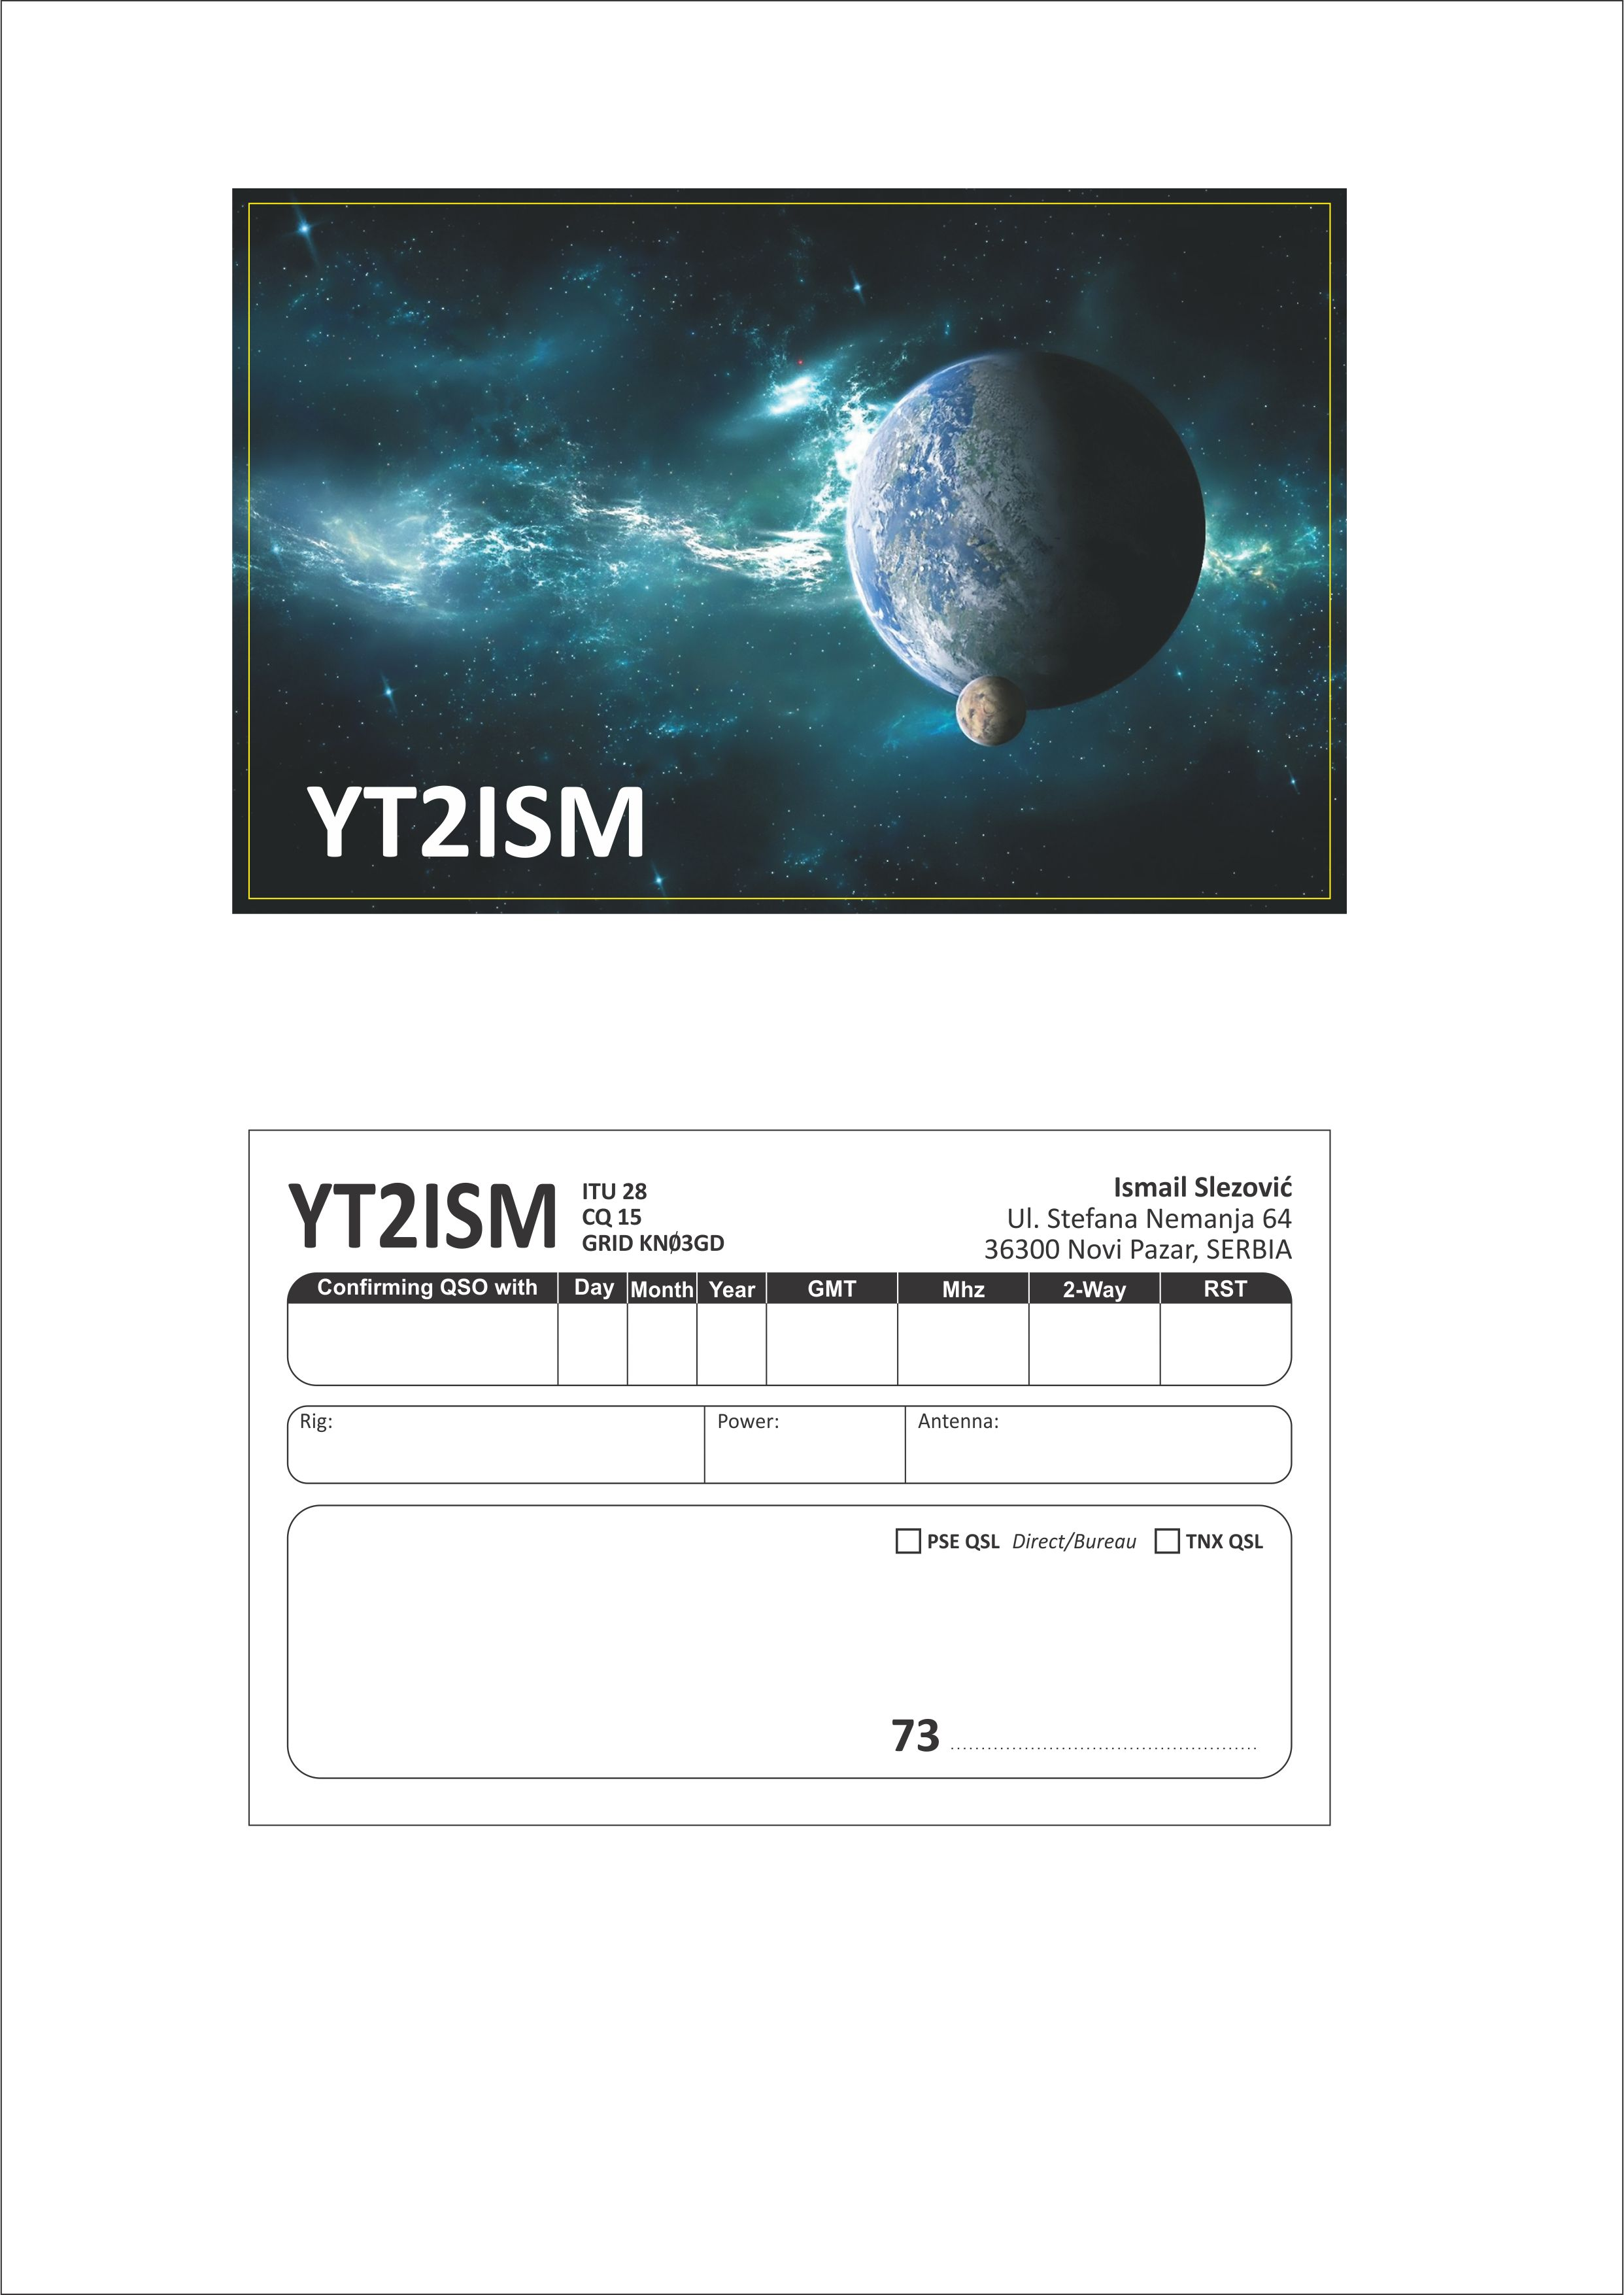 QSL image for YT2ISM